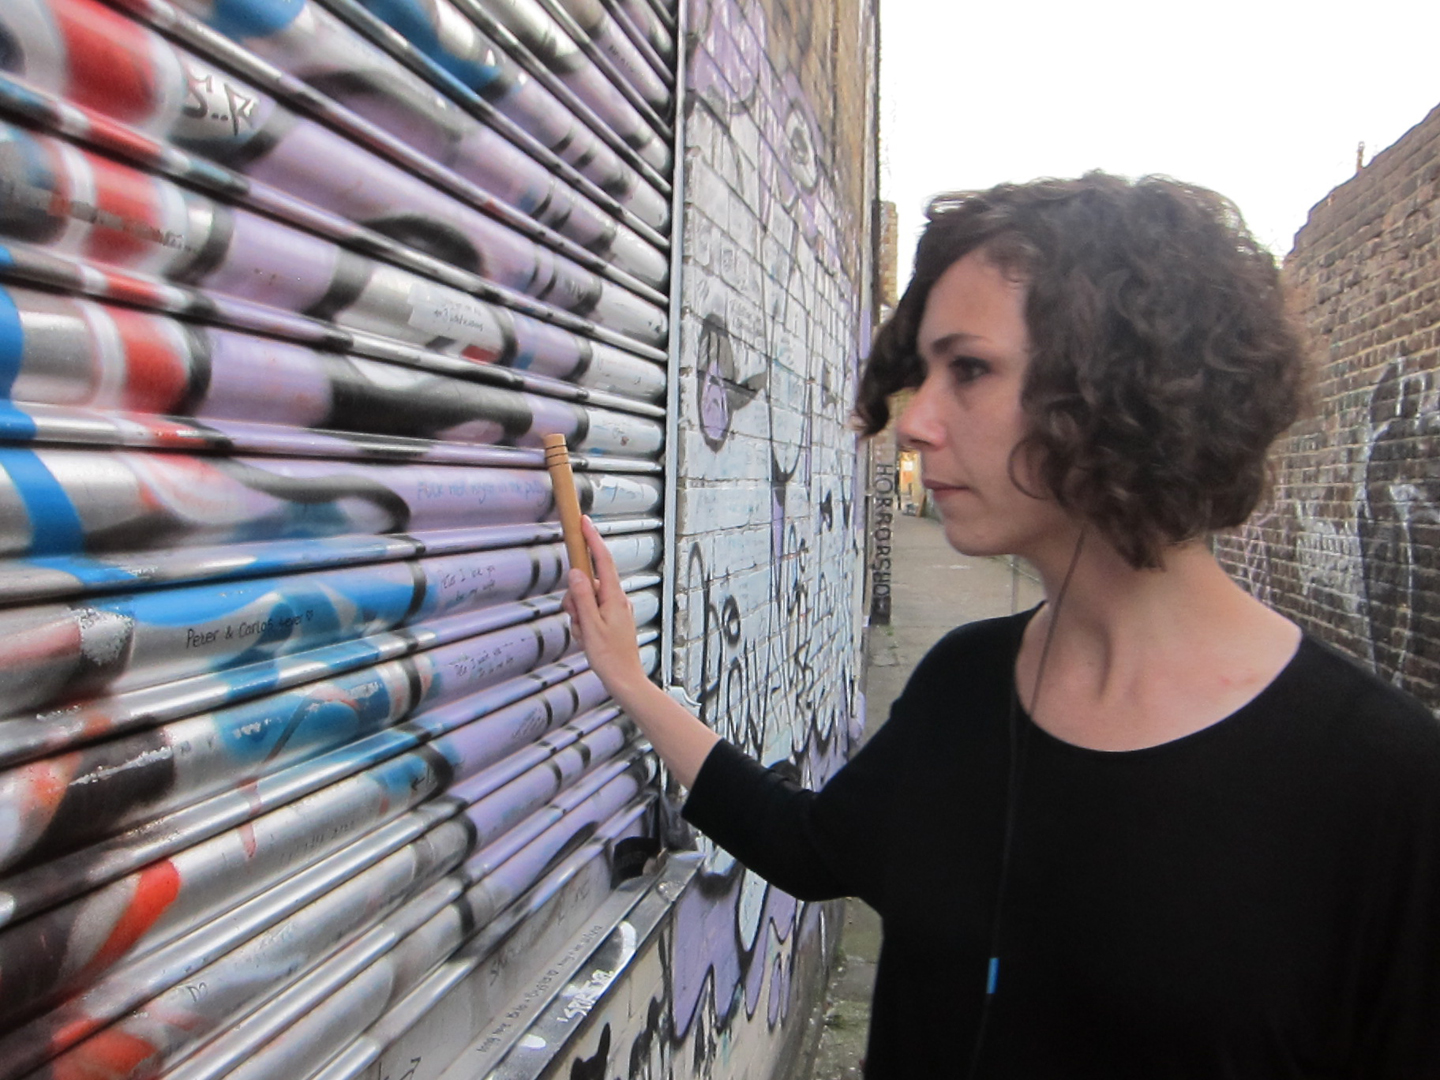 ©ISEA2015: 21st International Symposium on Electronic Art, Maria Papadomanolaki, A certain geography: disrupting site-specific sound through networked performance